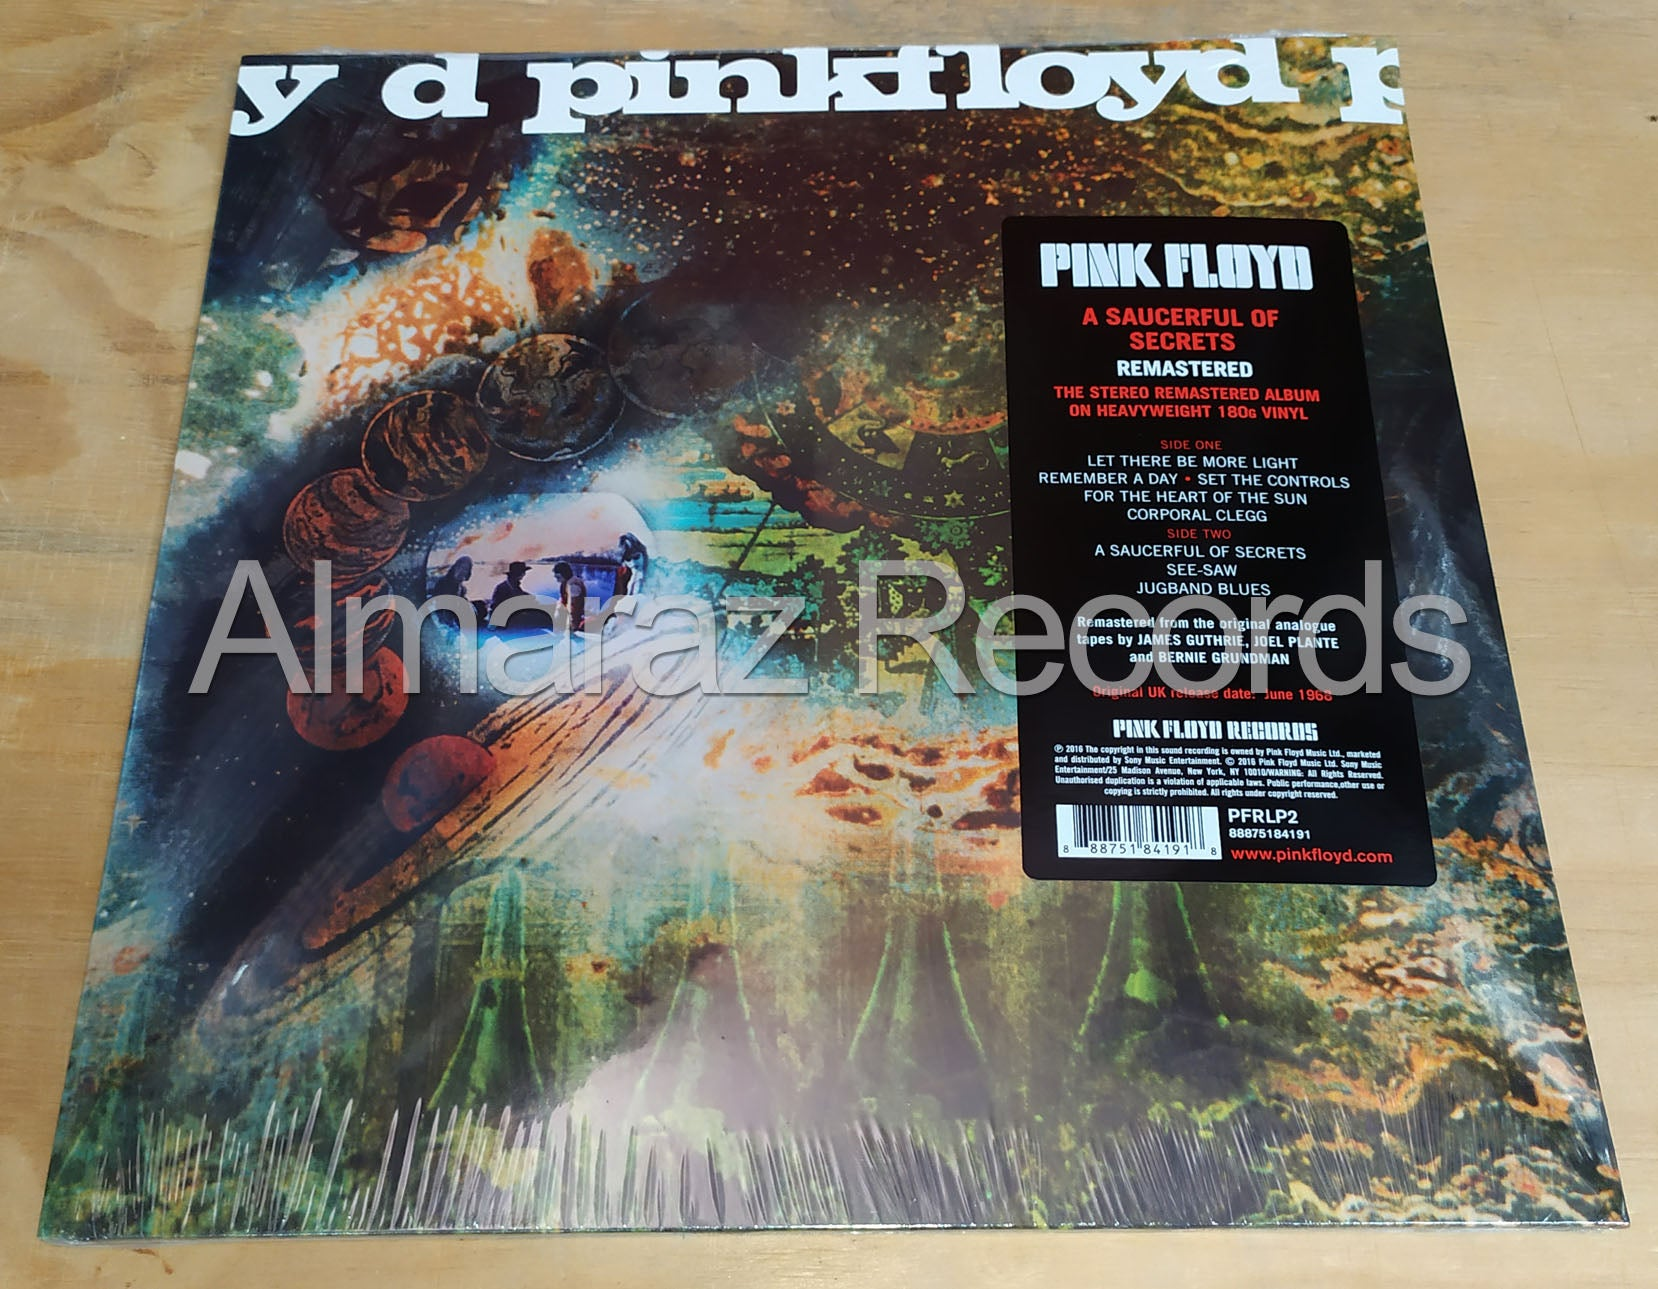 Pink Floyd A Saucerful Of Secrets Remastered Vinyl LP